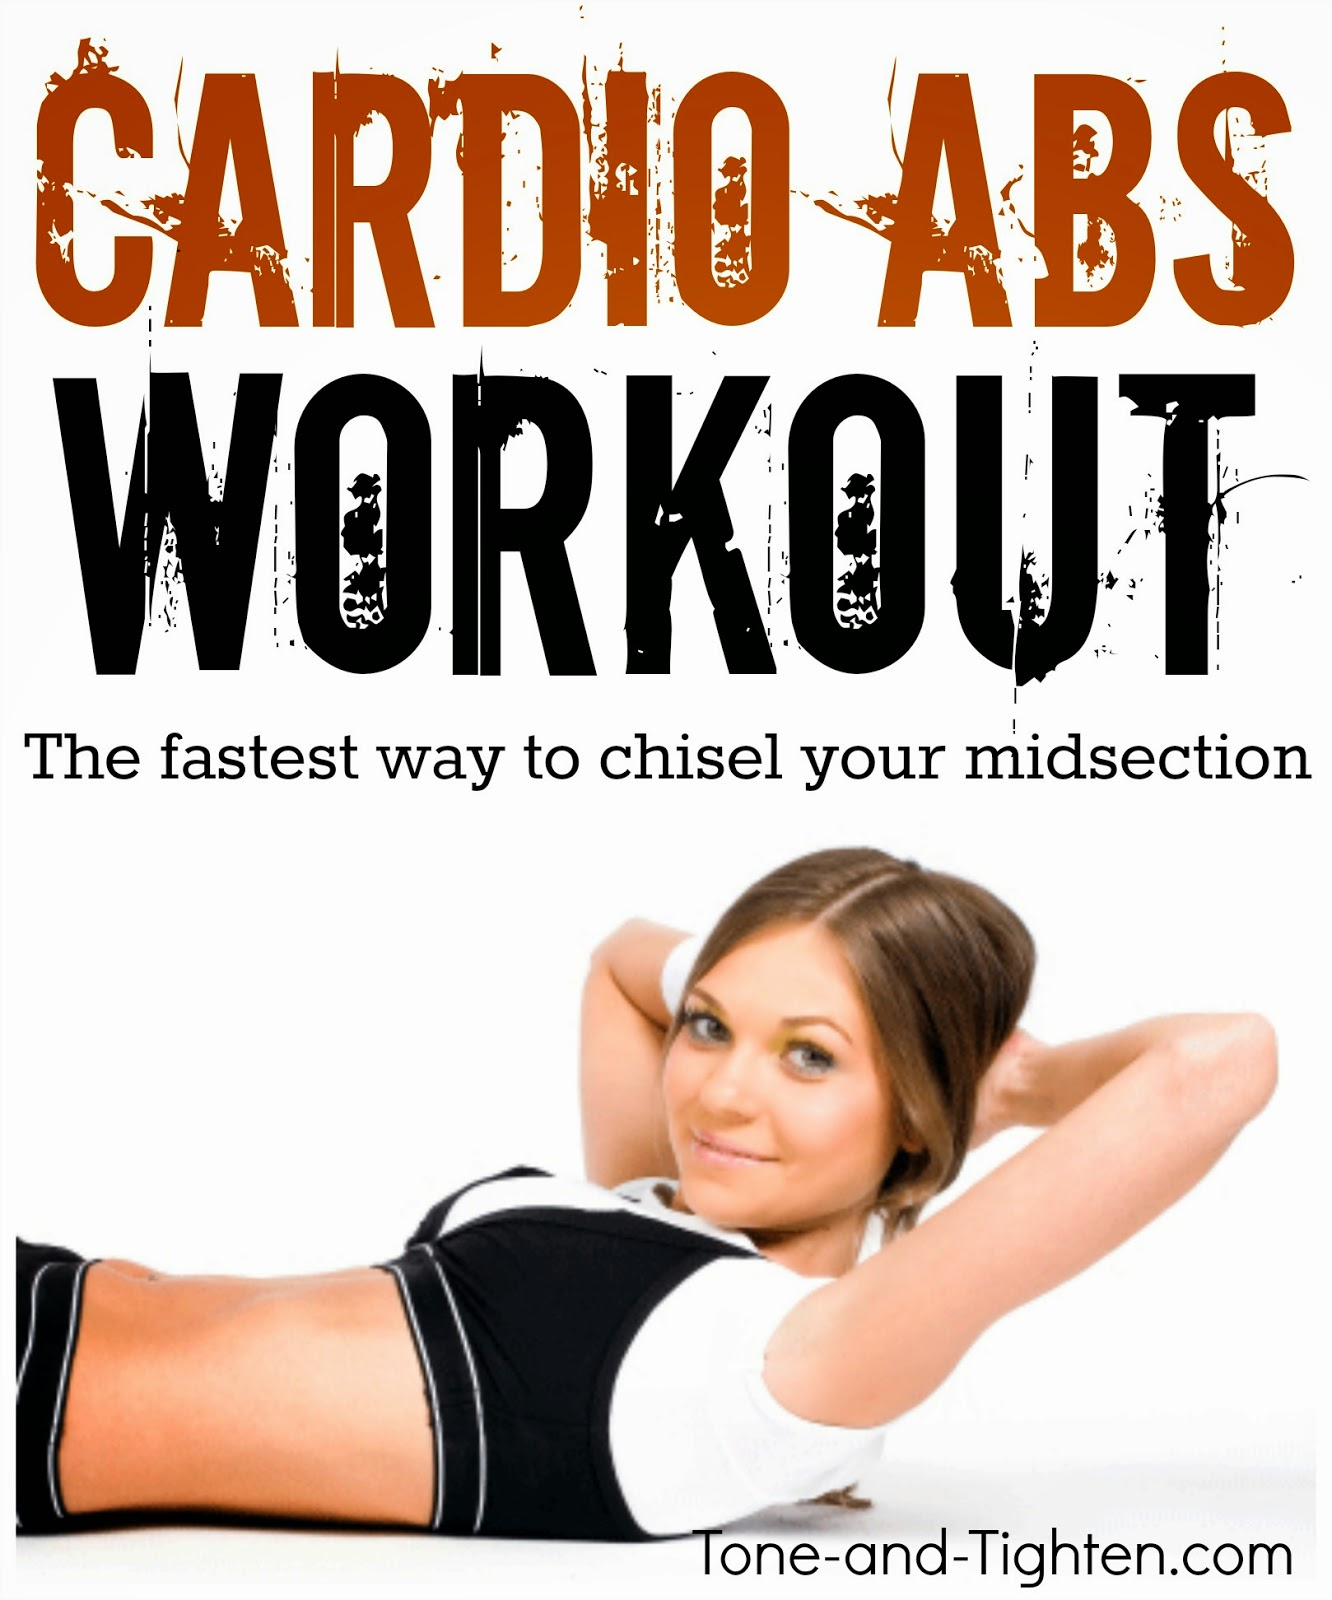 https://tone-and-tighten.com/2014/02/post-valentines-day-workout-cardio-core-at-home-meltdown.html